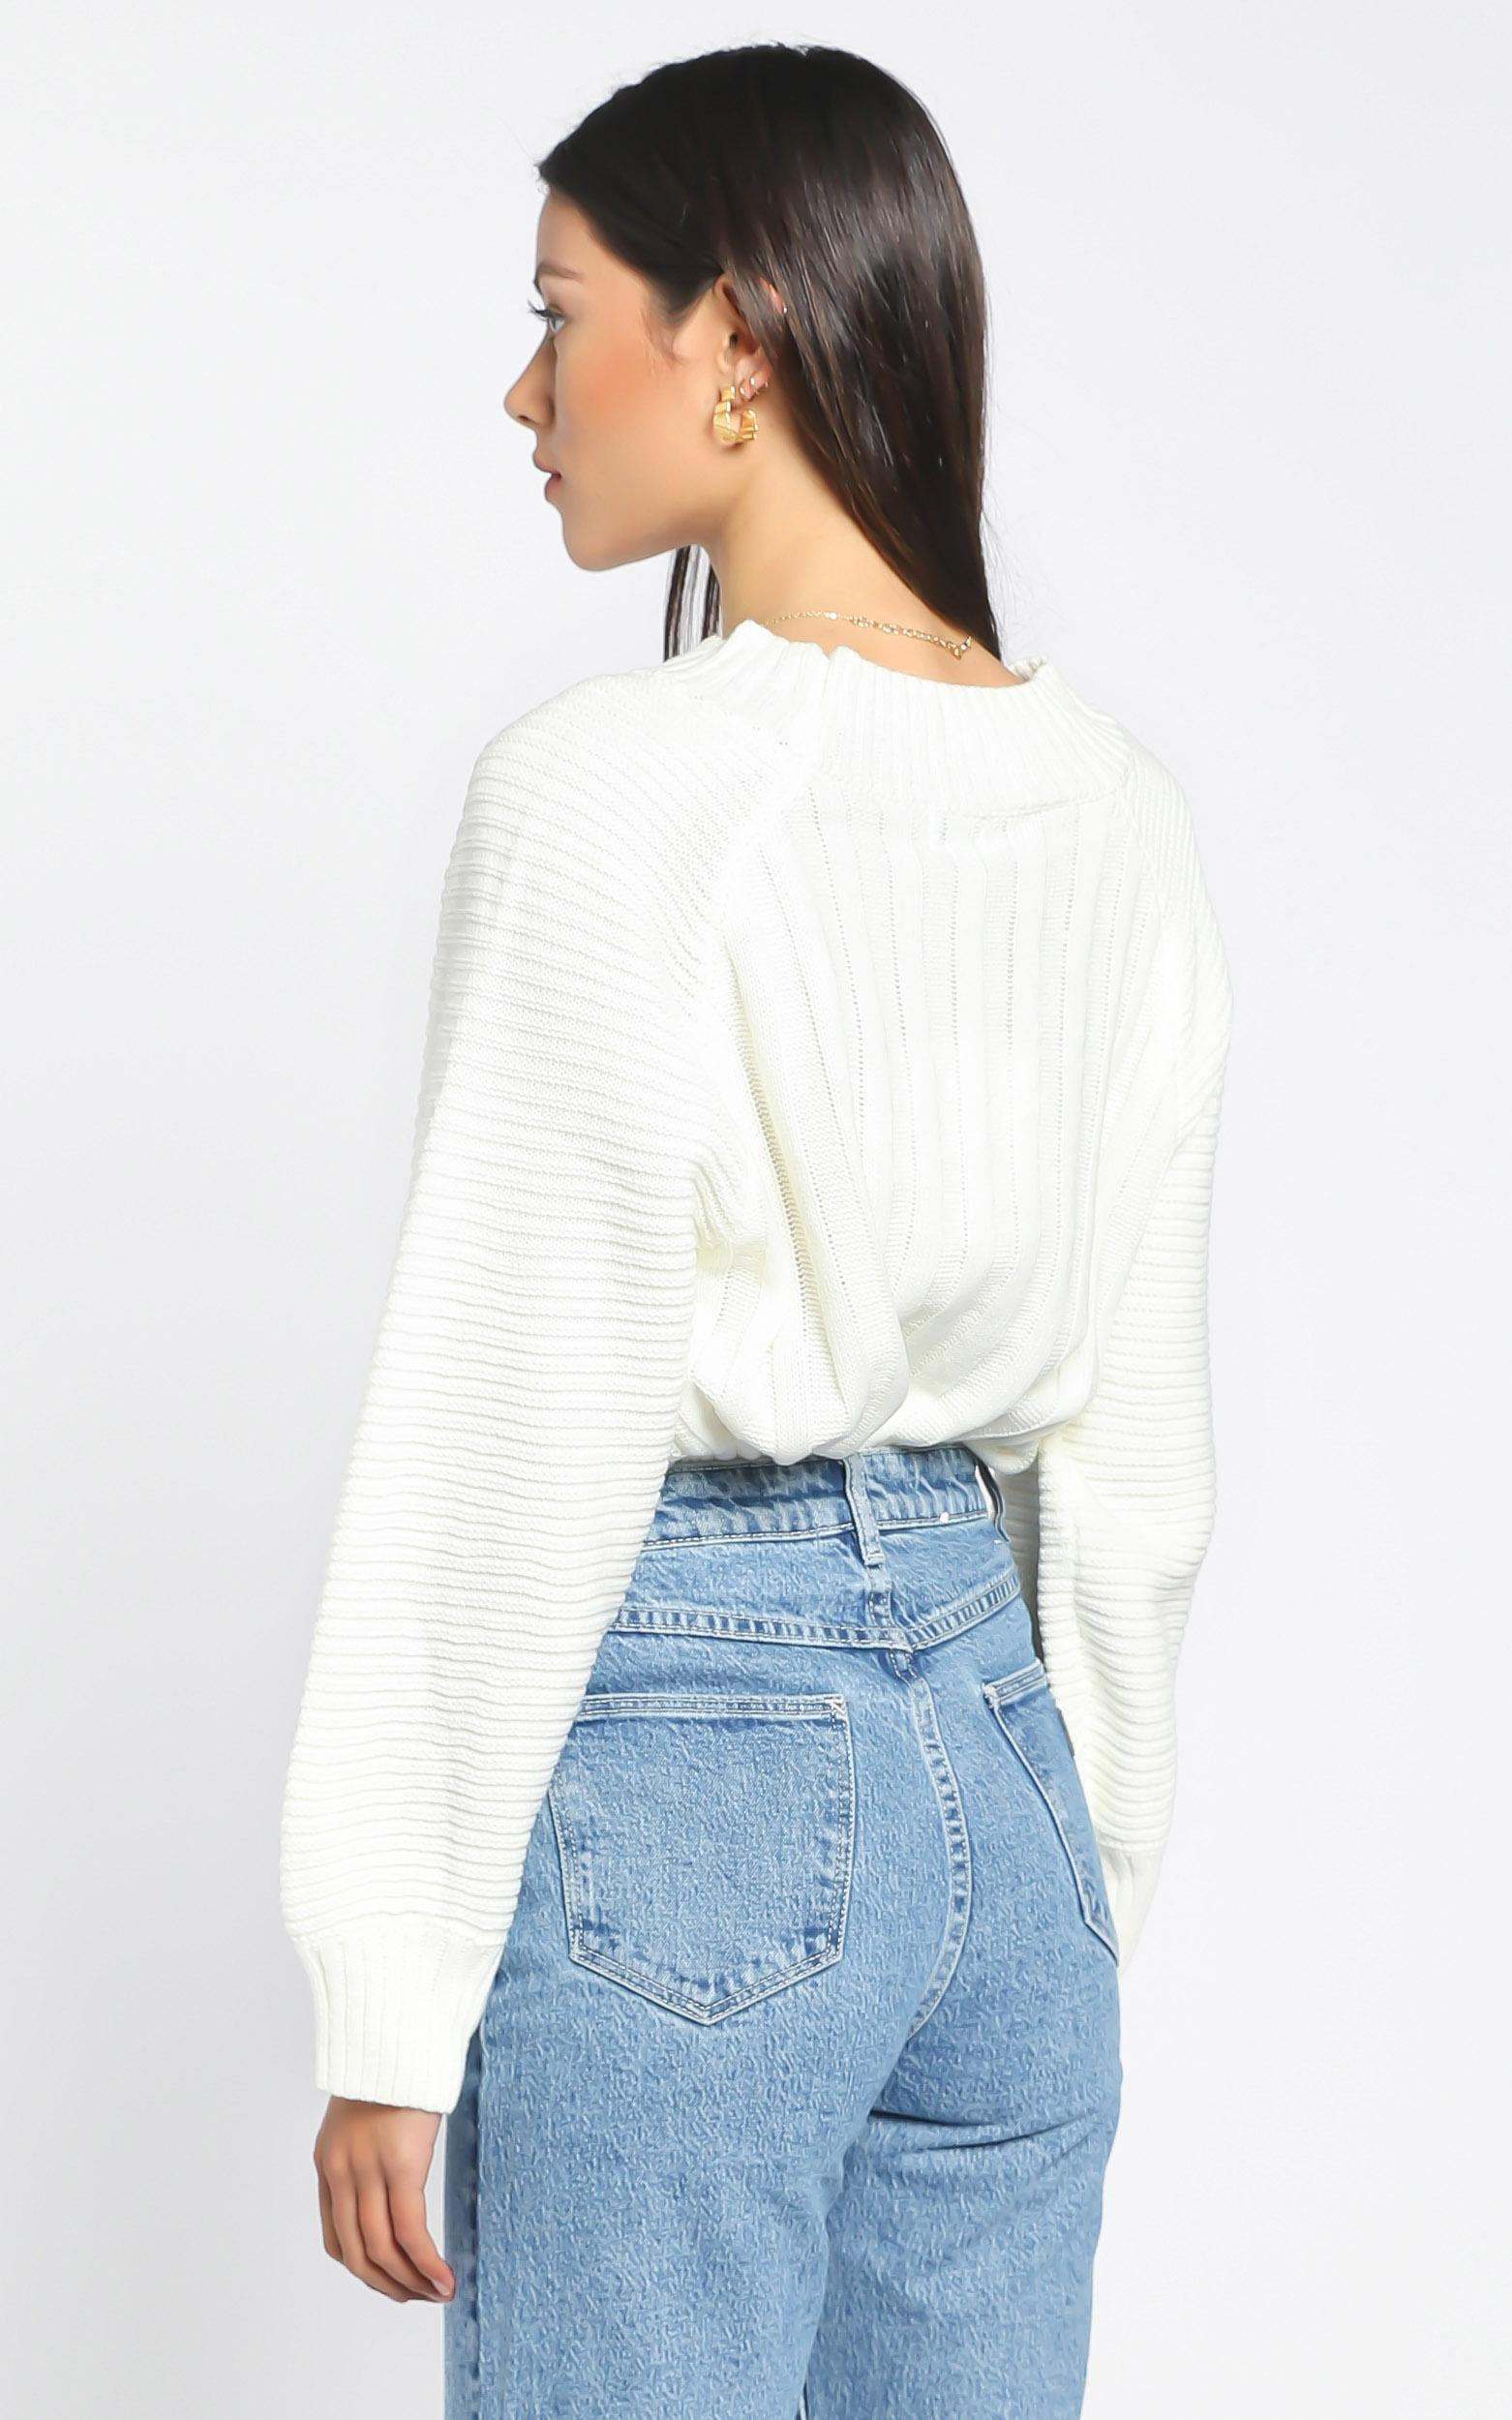 Keris Jumper in White - S/M, White, hi-res image number null